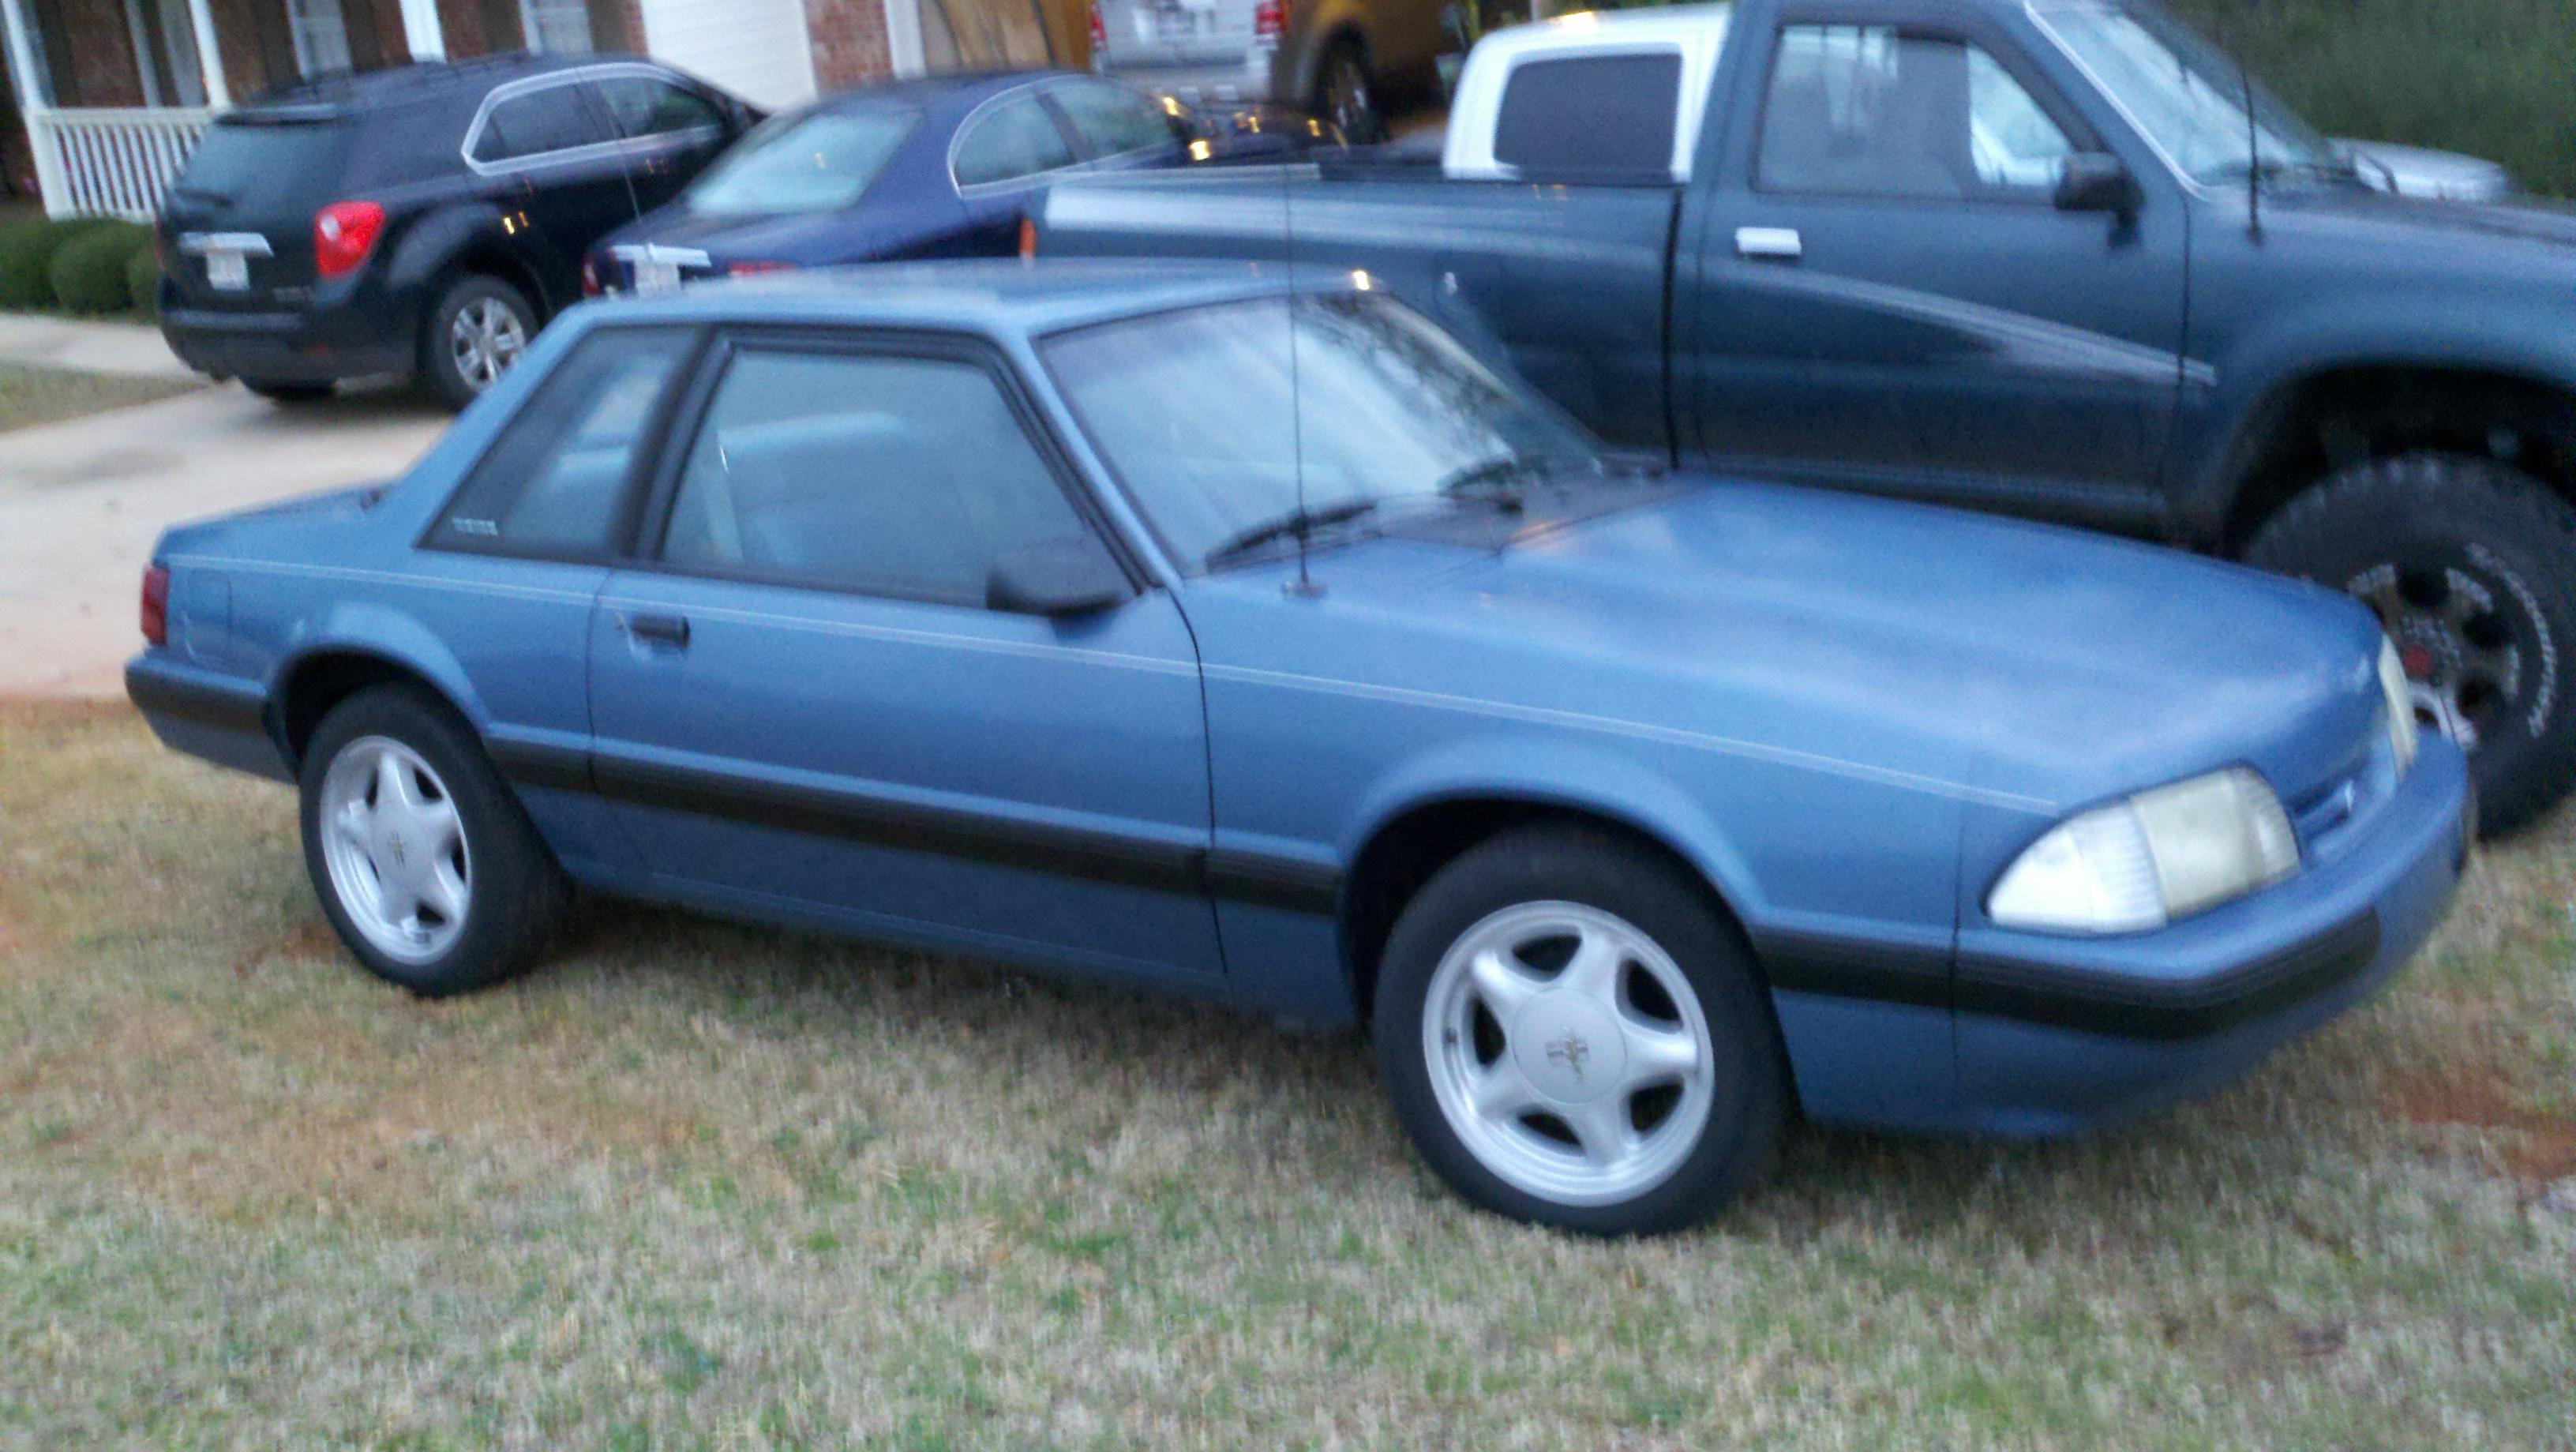 1989 Mustang LX Coupe 4R70W Swap  Ford Mustang Forum